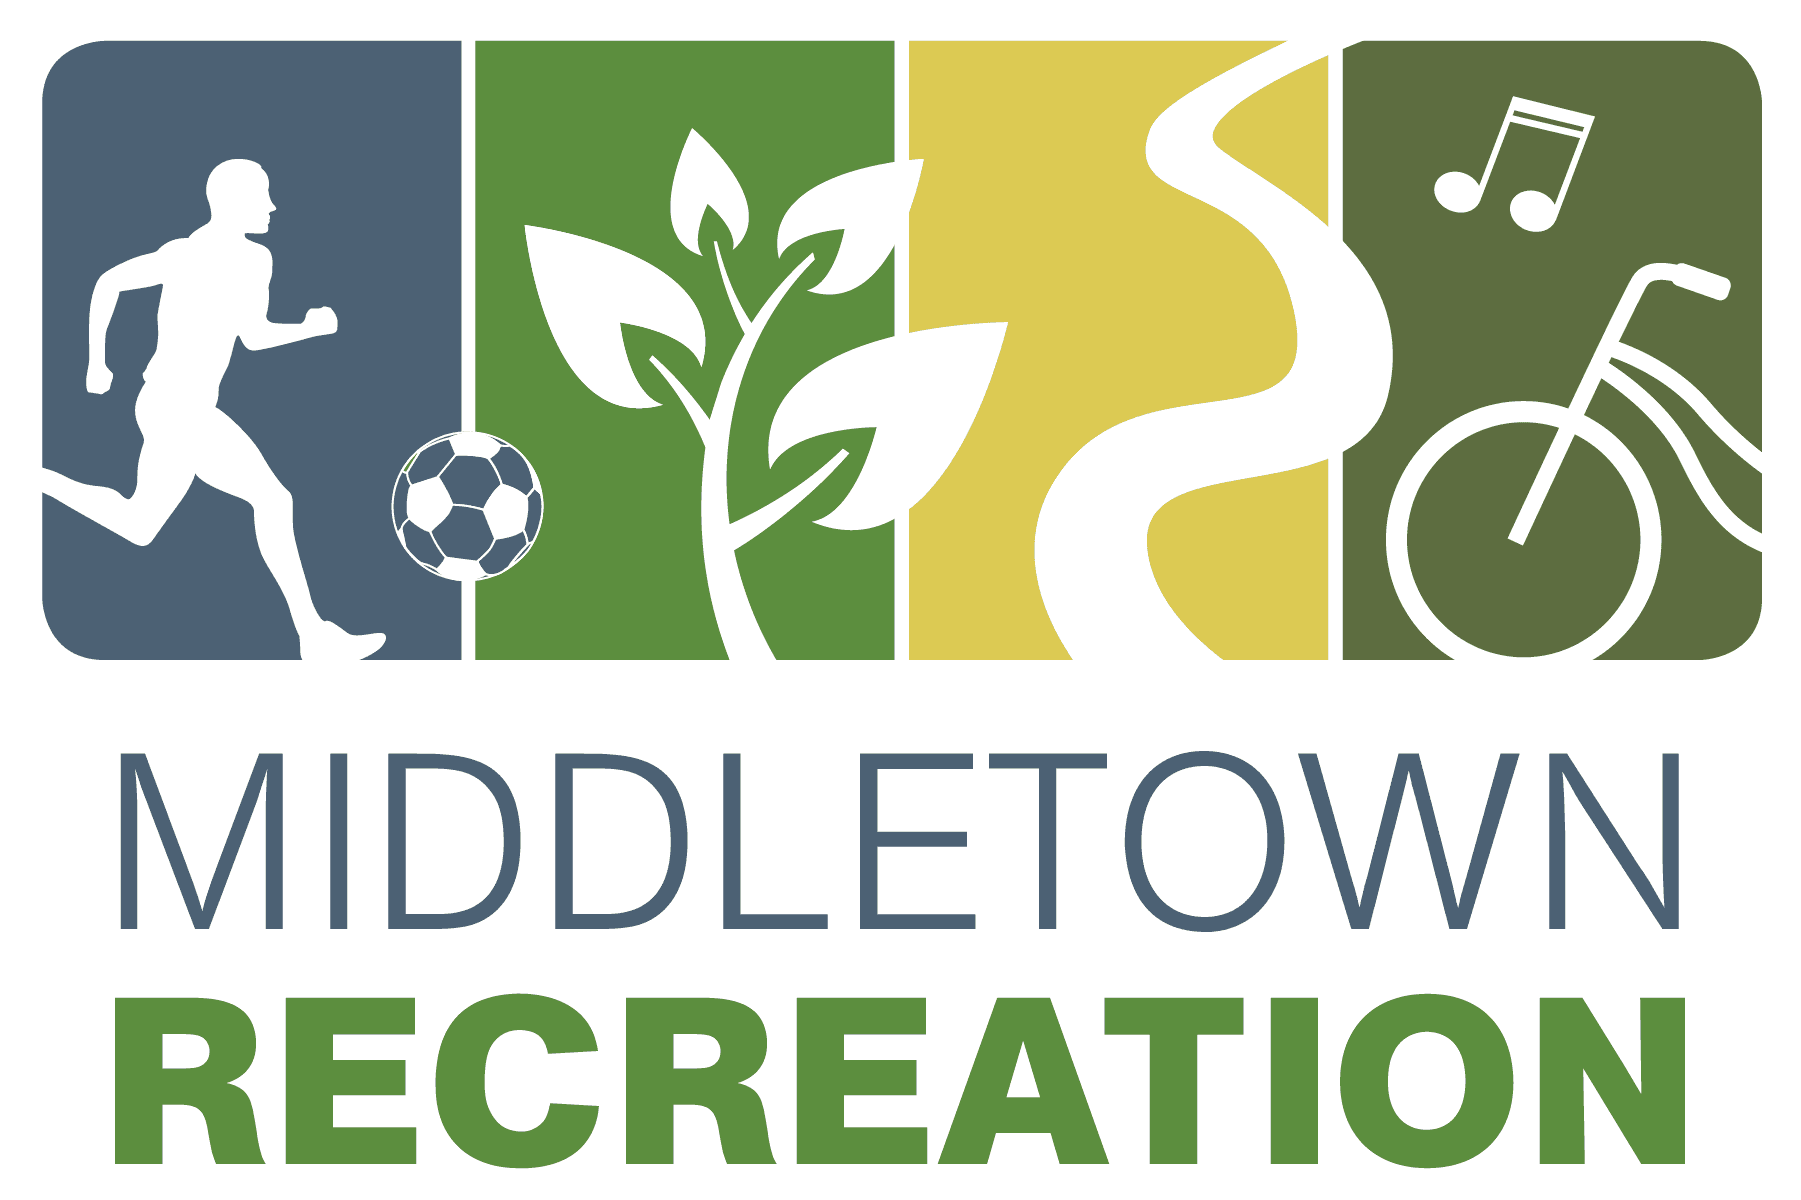 Middletown Recreation logo